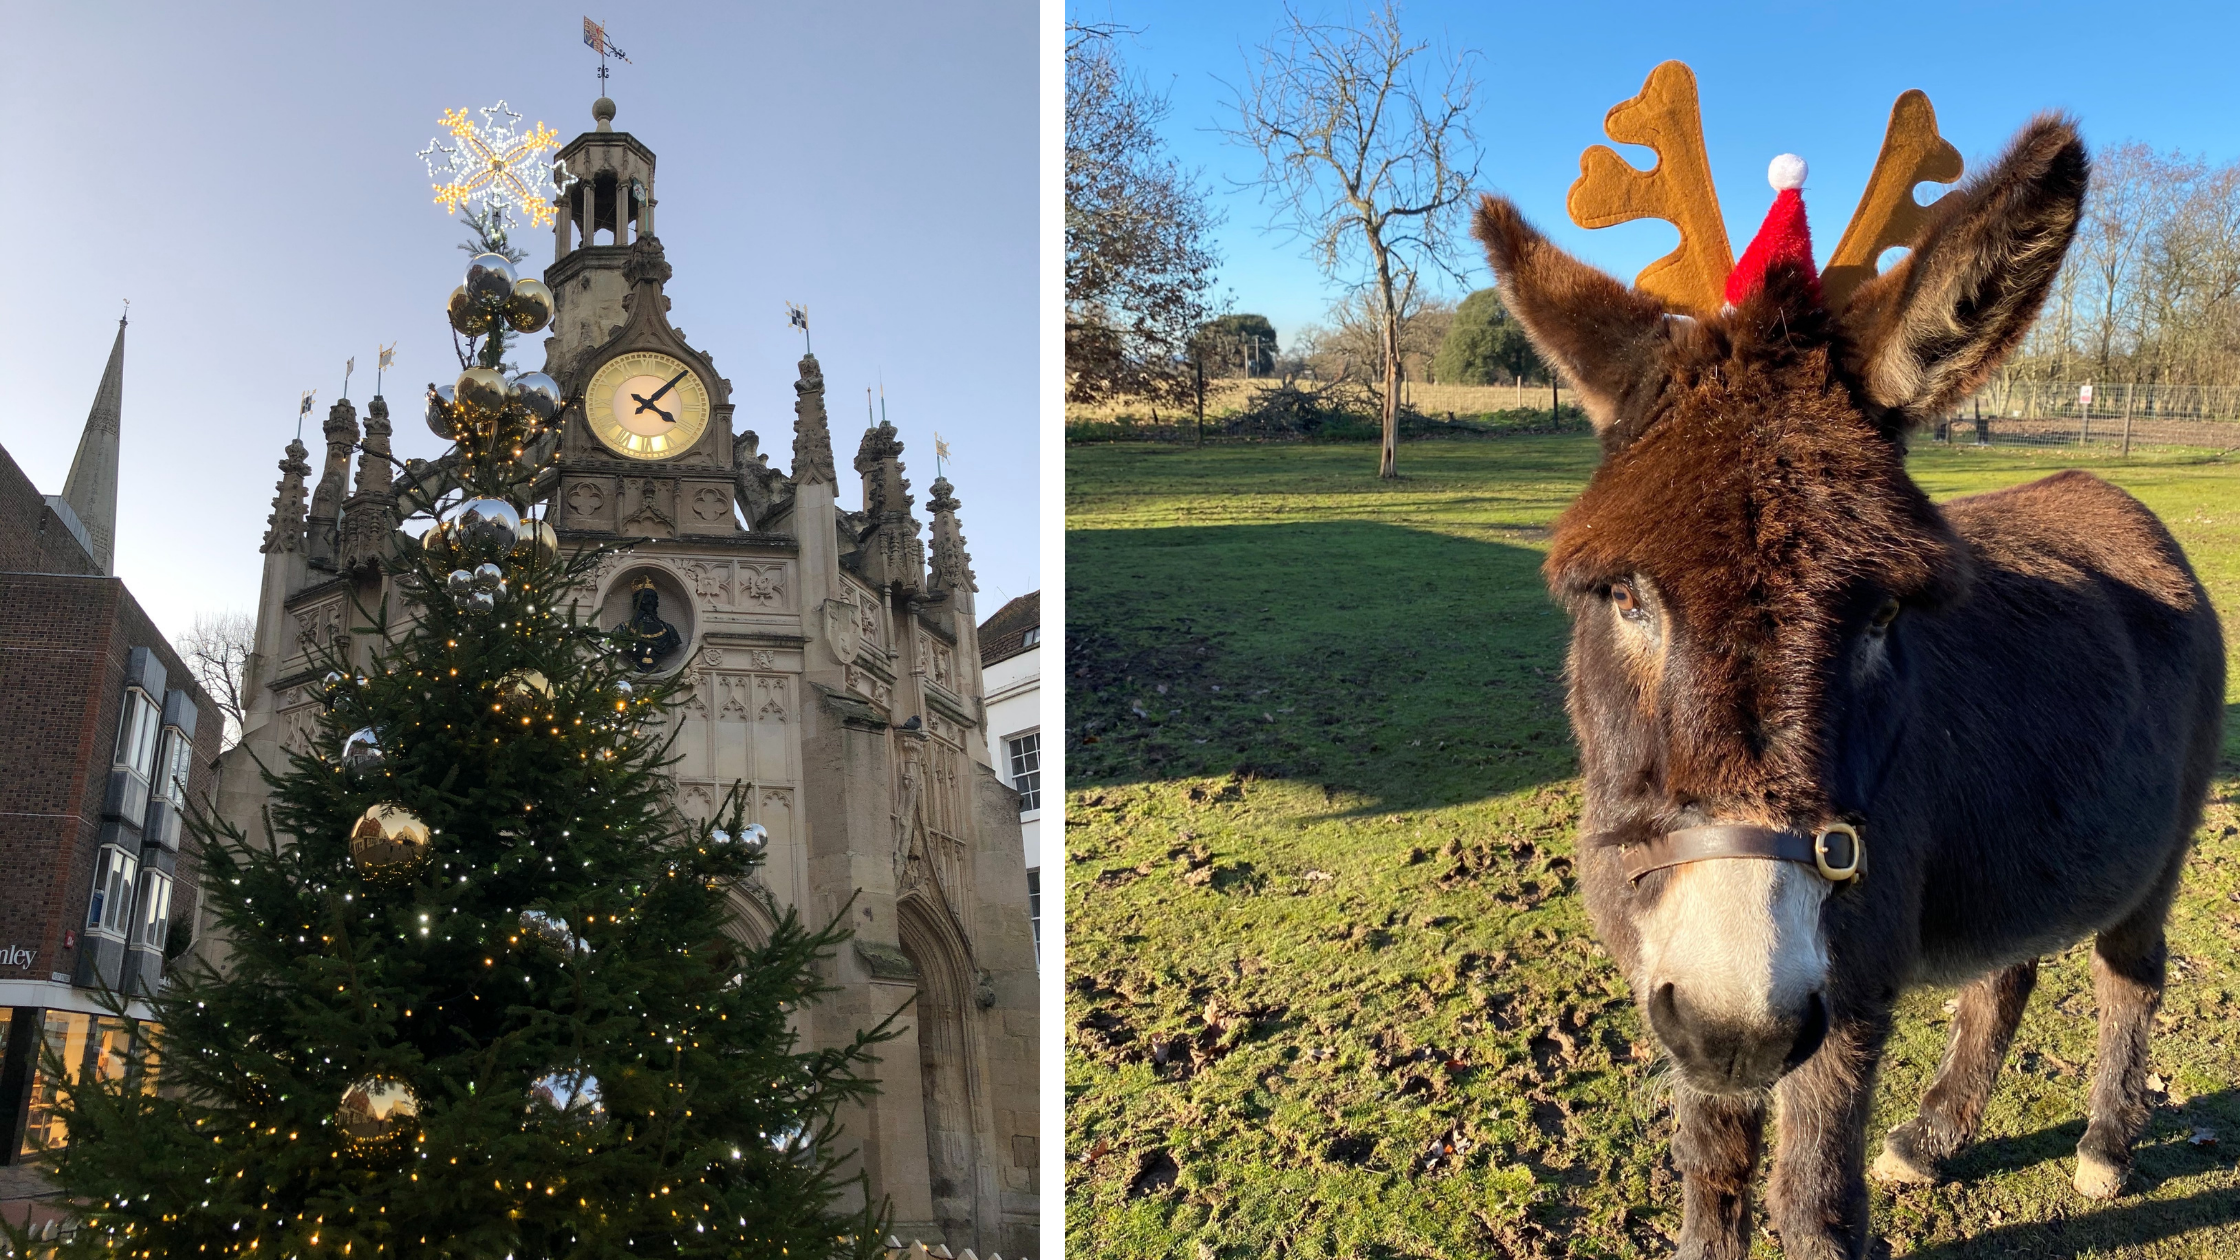 Rotary Clubs' of Chichester Tree of Goodwill and Aldingbourne Trust donkey